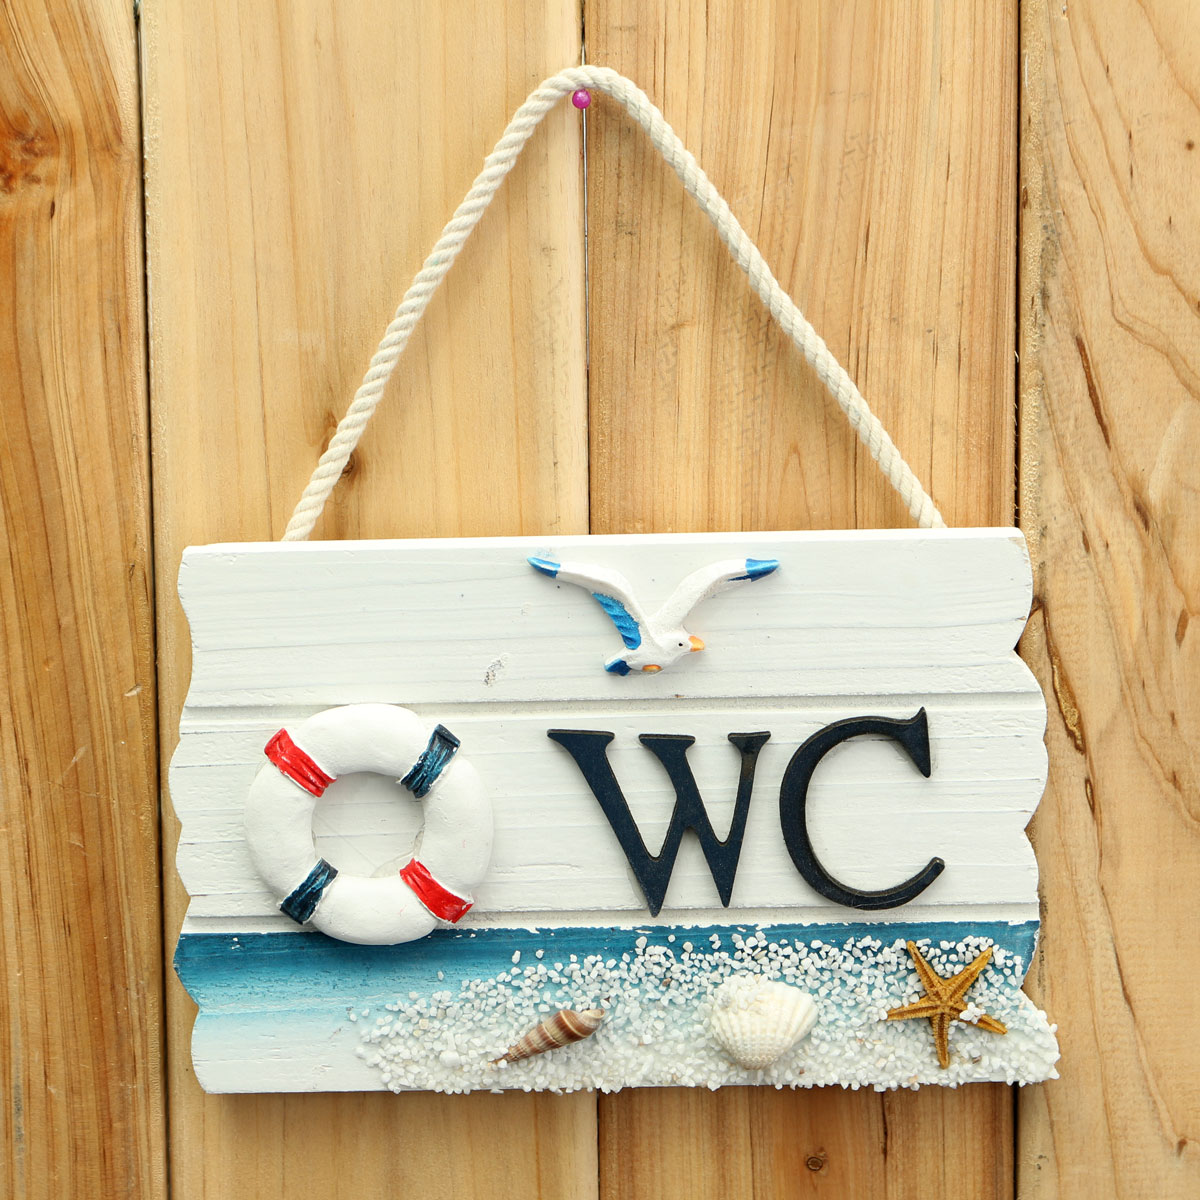 17.5cm Mediterranean Style Decor WC Toilet Wooden Door Wall Sign Hanging Ornaments